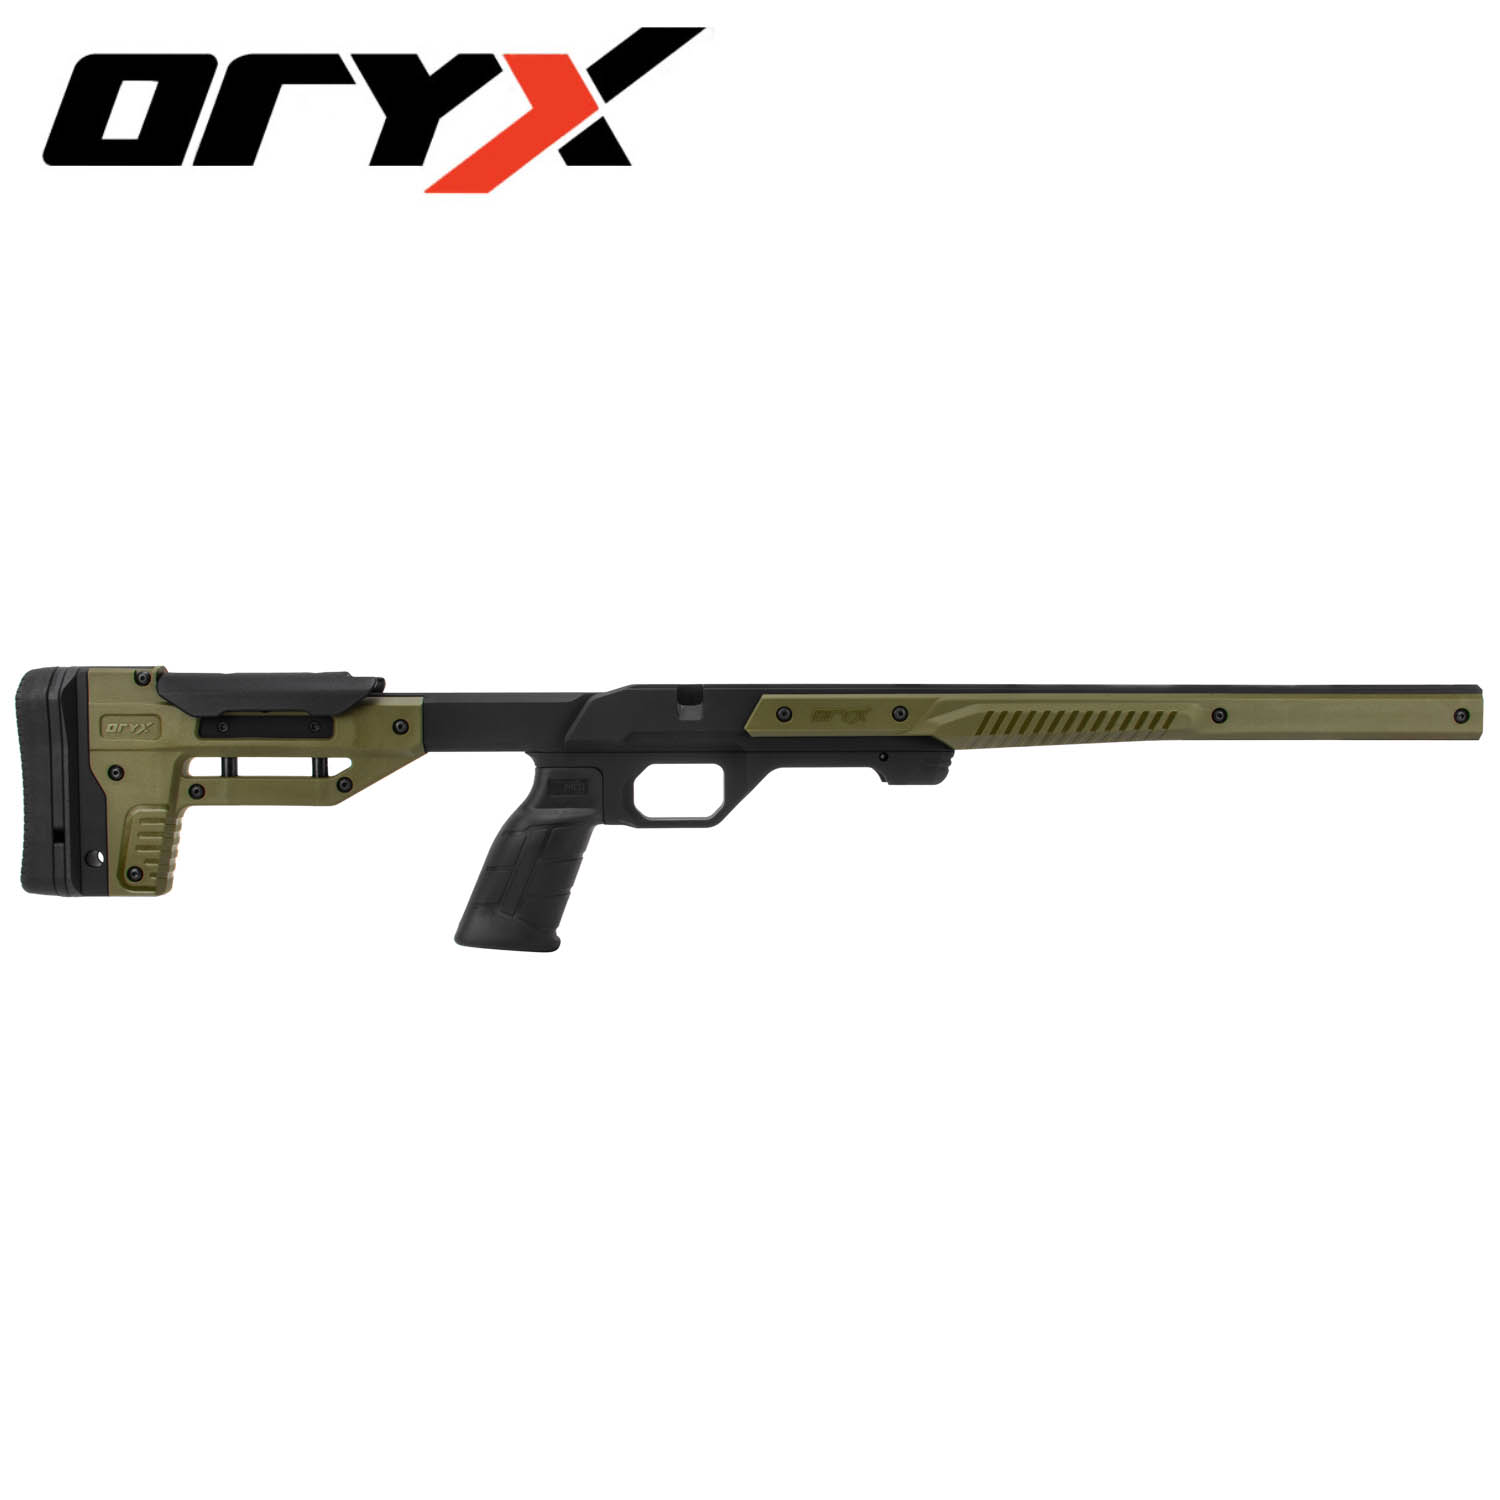 Oryx Rifle Chassis, Howa Mini Action, Black / OD Green: Midwest Gun Works